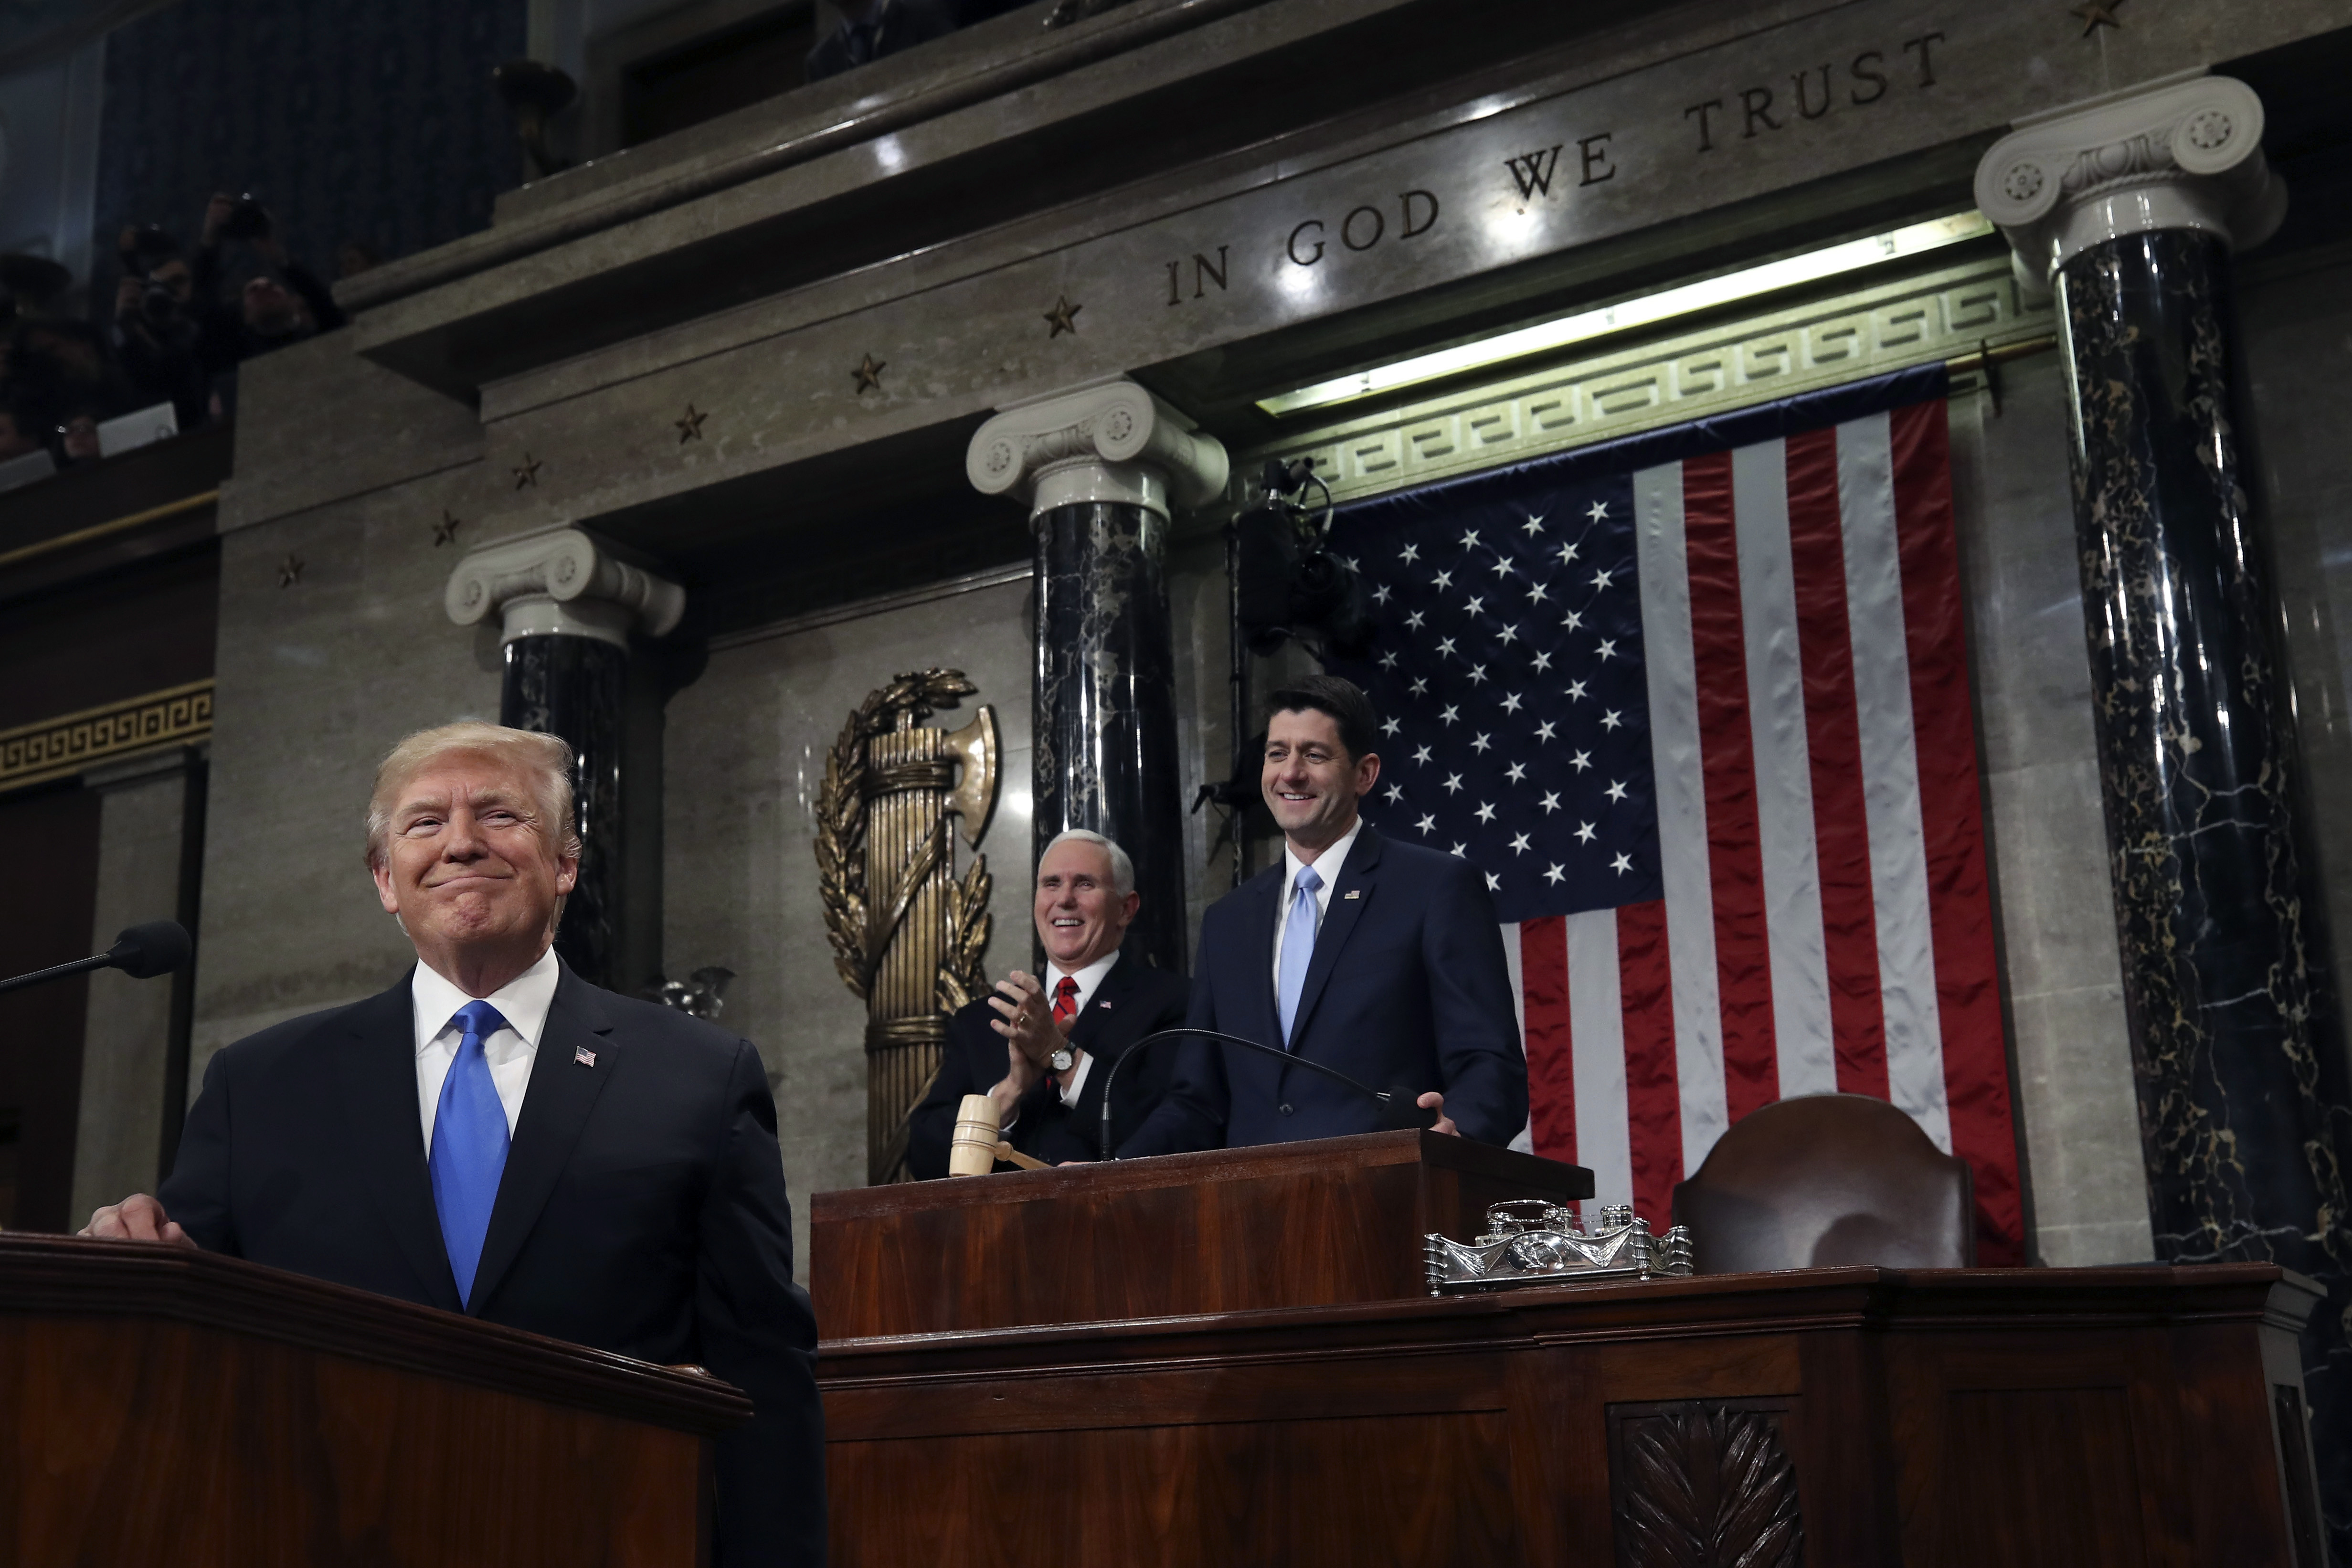 President Donald Trump pauses as delivers his first State of the Union address in the House chamber of the U.S. Capitol to a joint session of Congress, Jan. 30, 2018 in Washington.